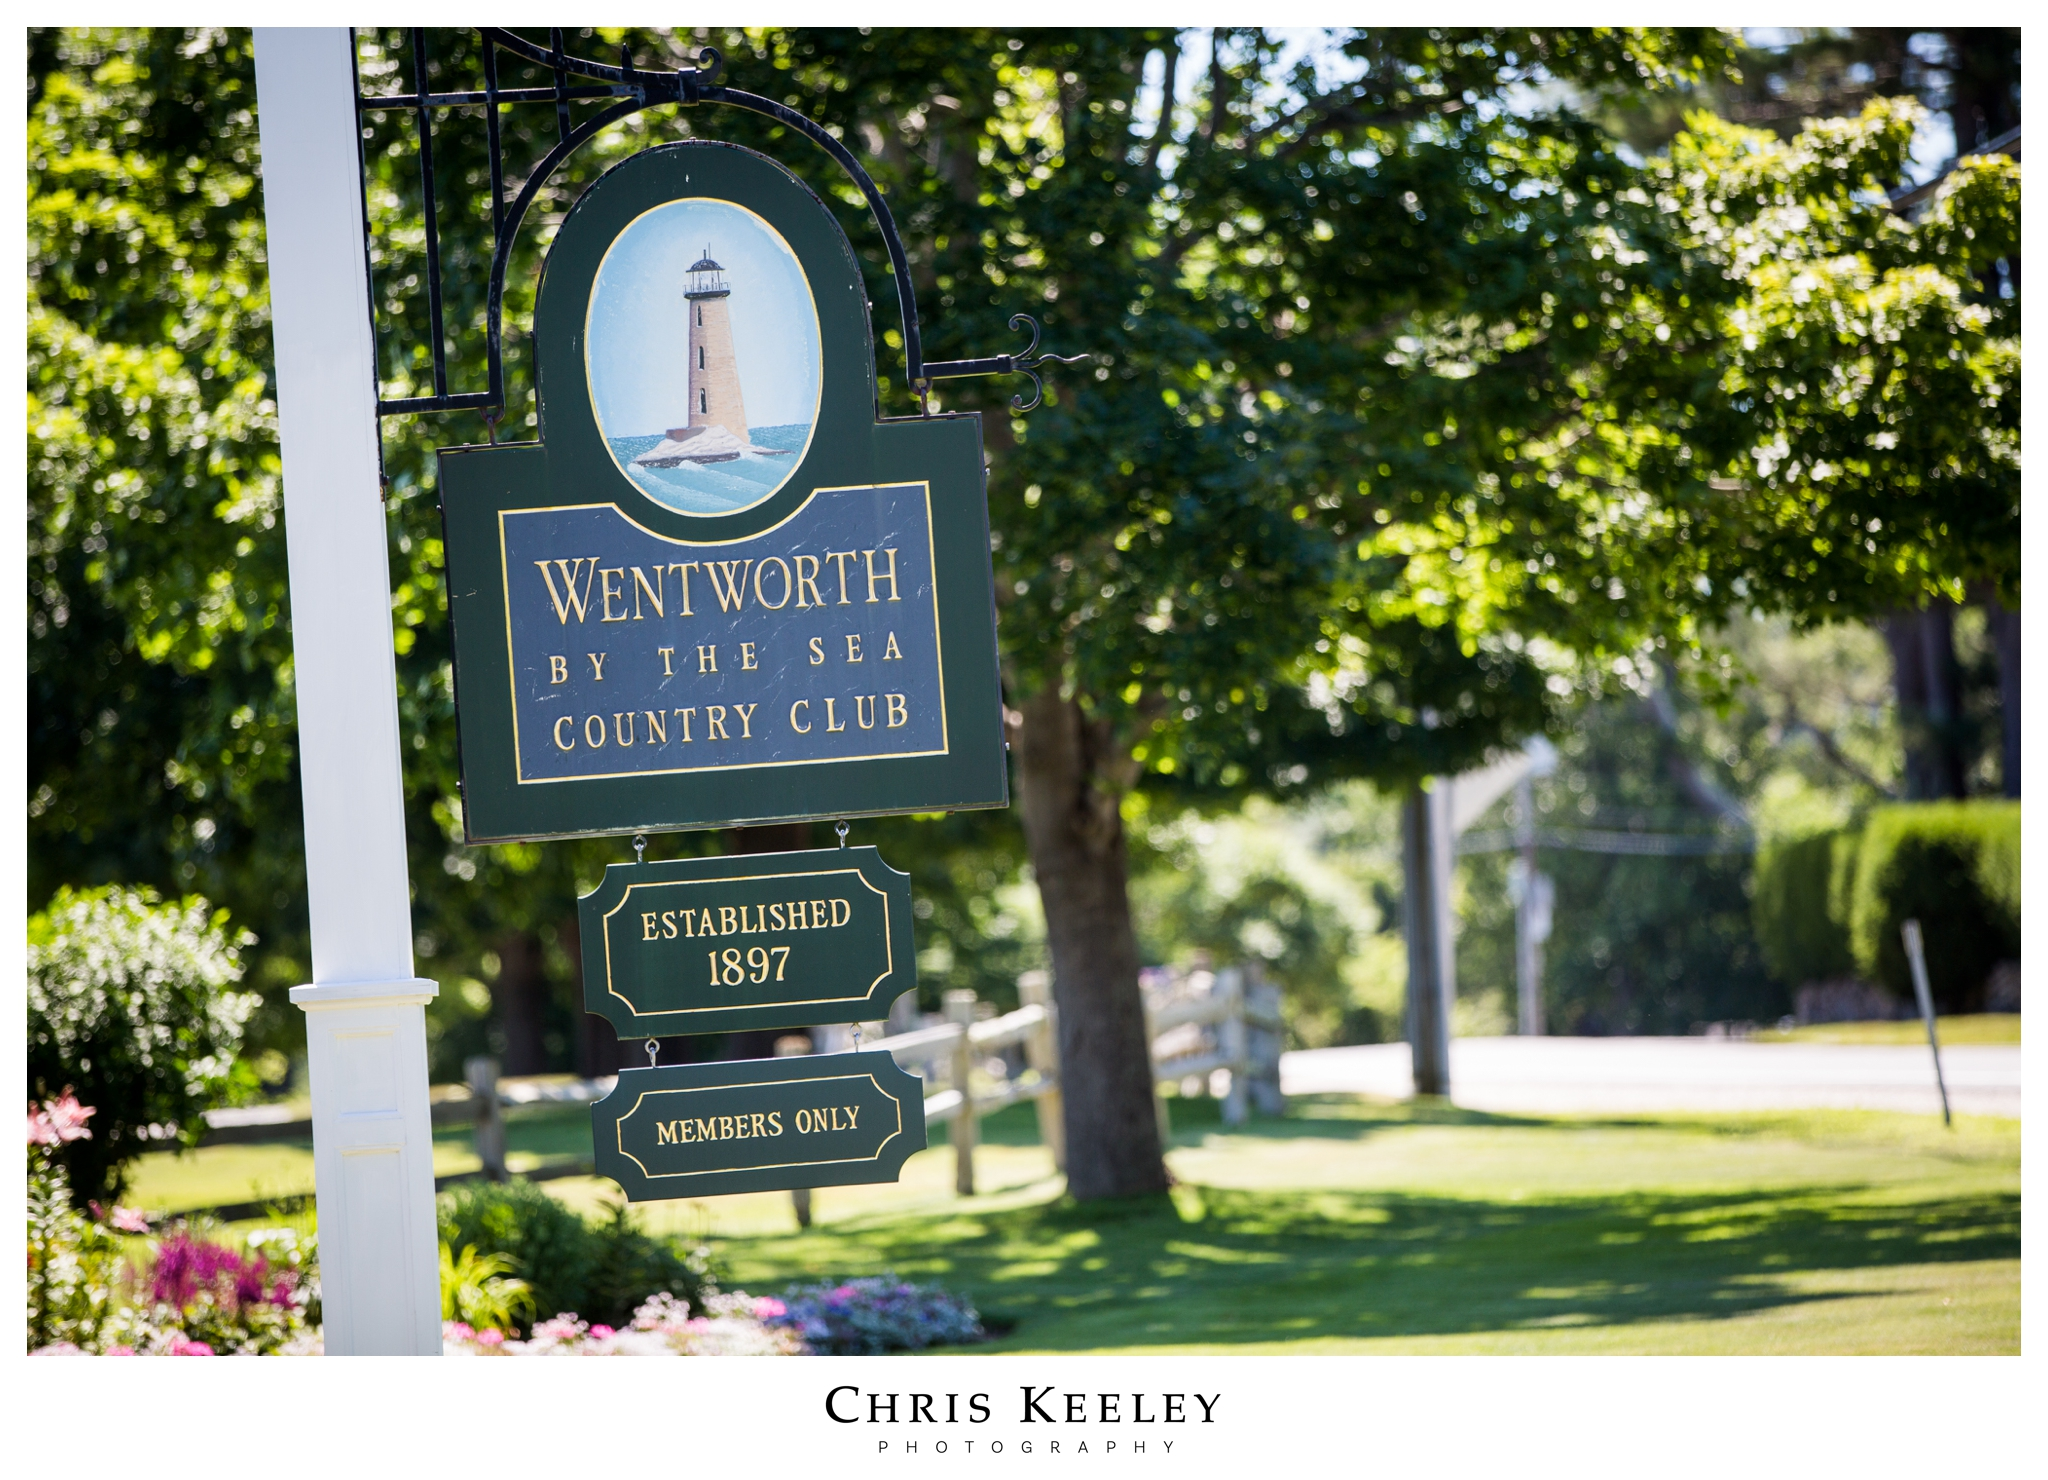 wentworth-by-the-sea-sign.jpg